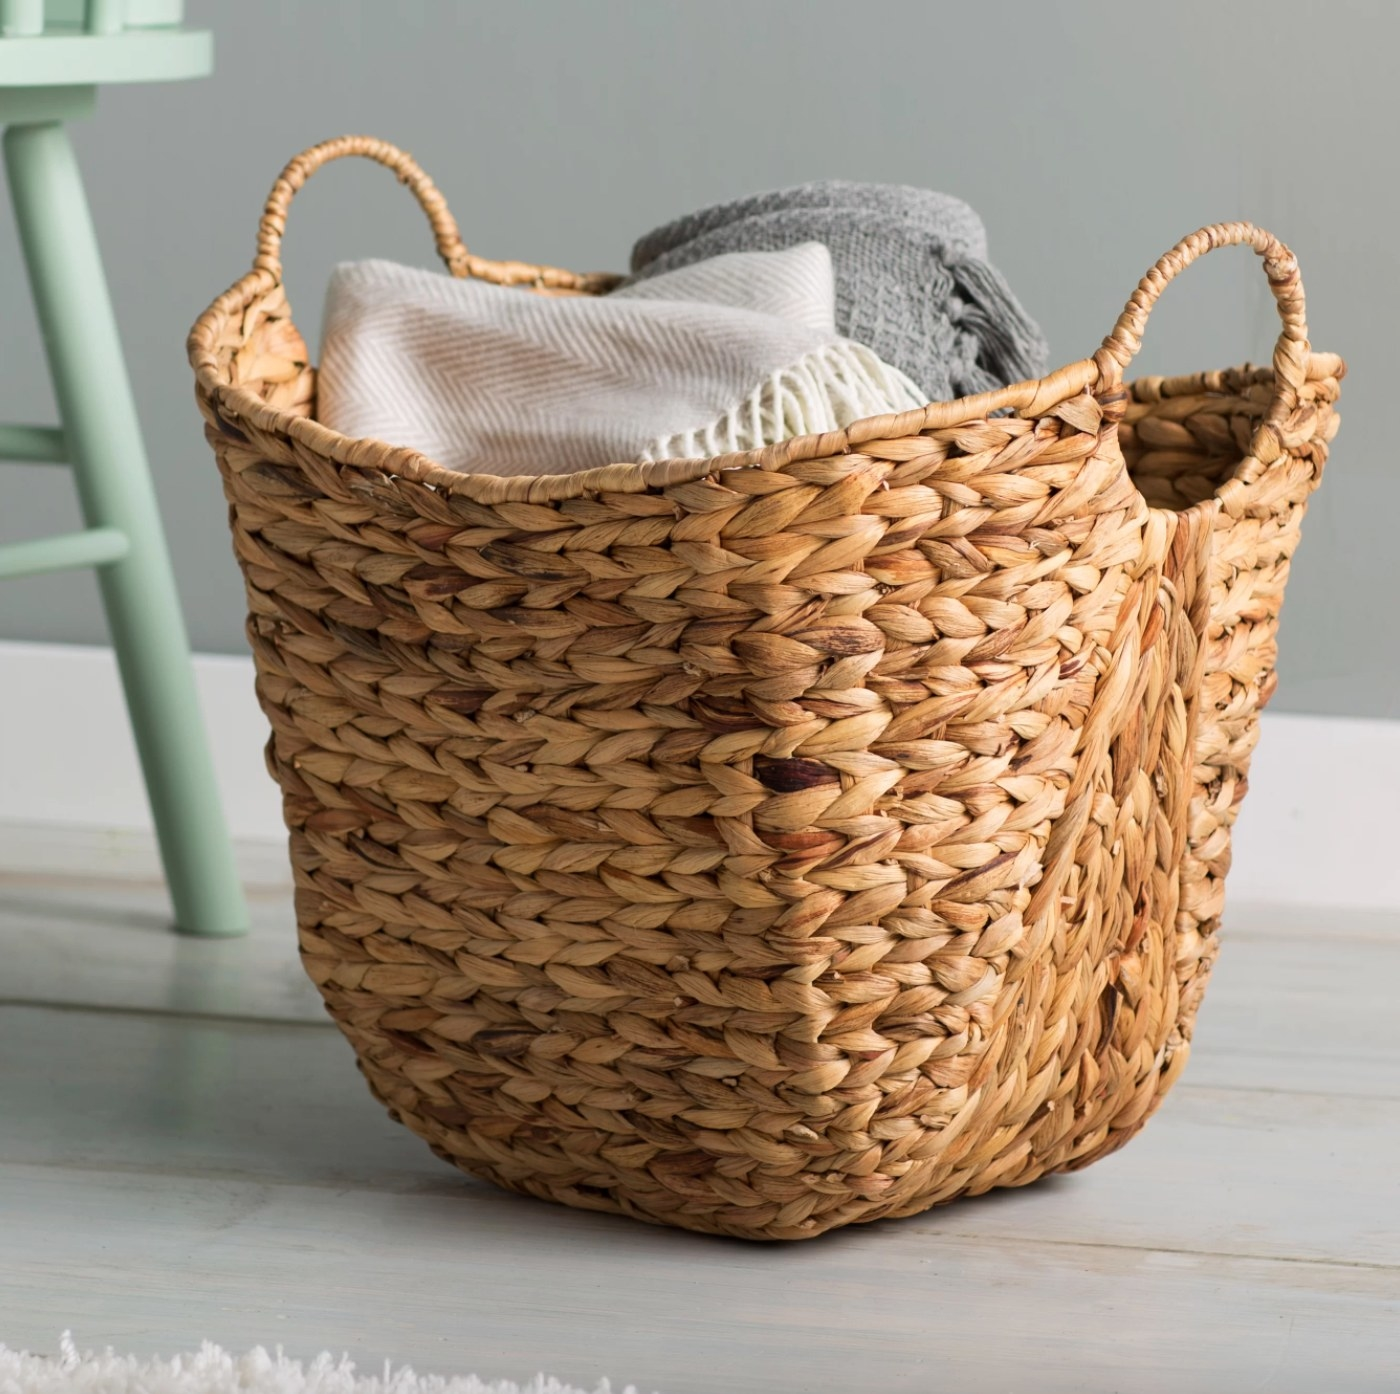 The wicker basket holding two blankets